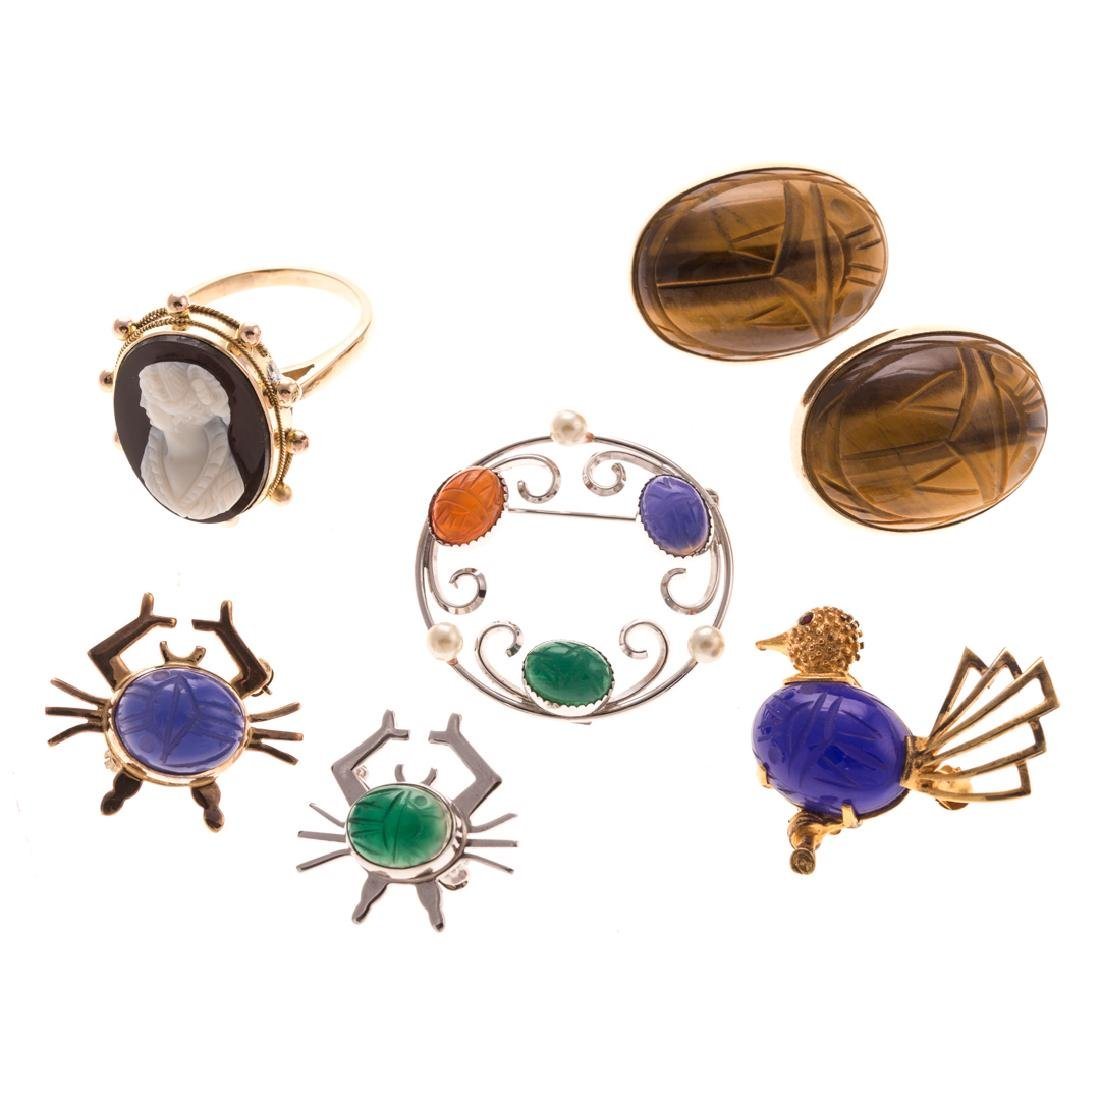 A Collection of Lady's Scarab & Cameo Jewelry